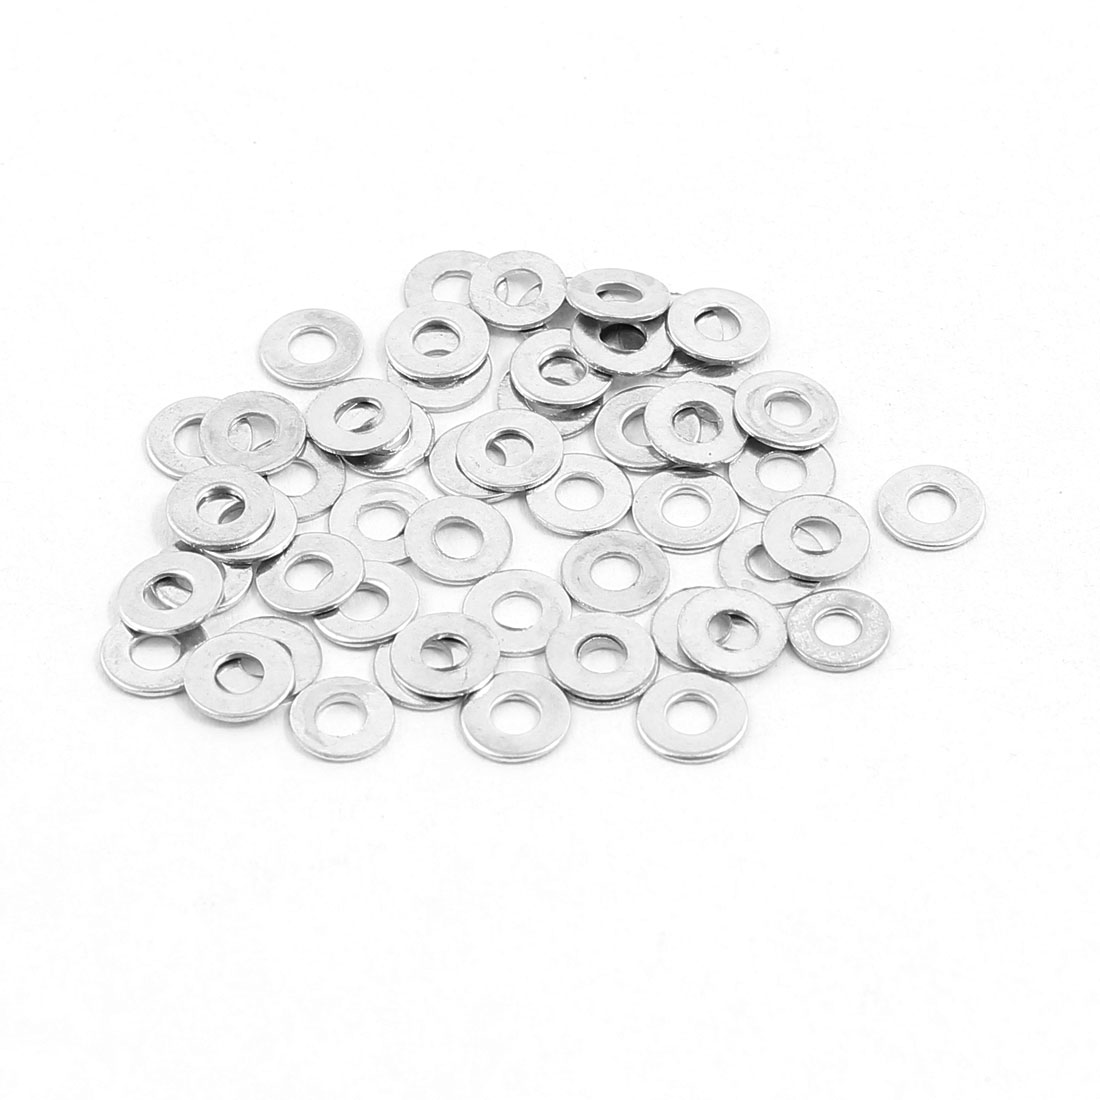 2x5mm Stainless Steel Flat Washer Plain Spacer Gasket Fastener for Screw Bolt 50pcs